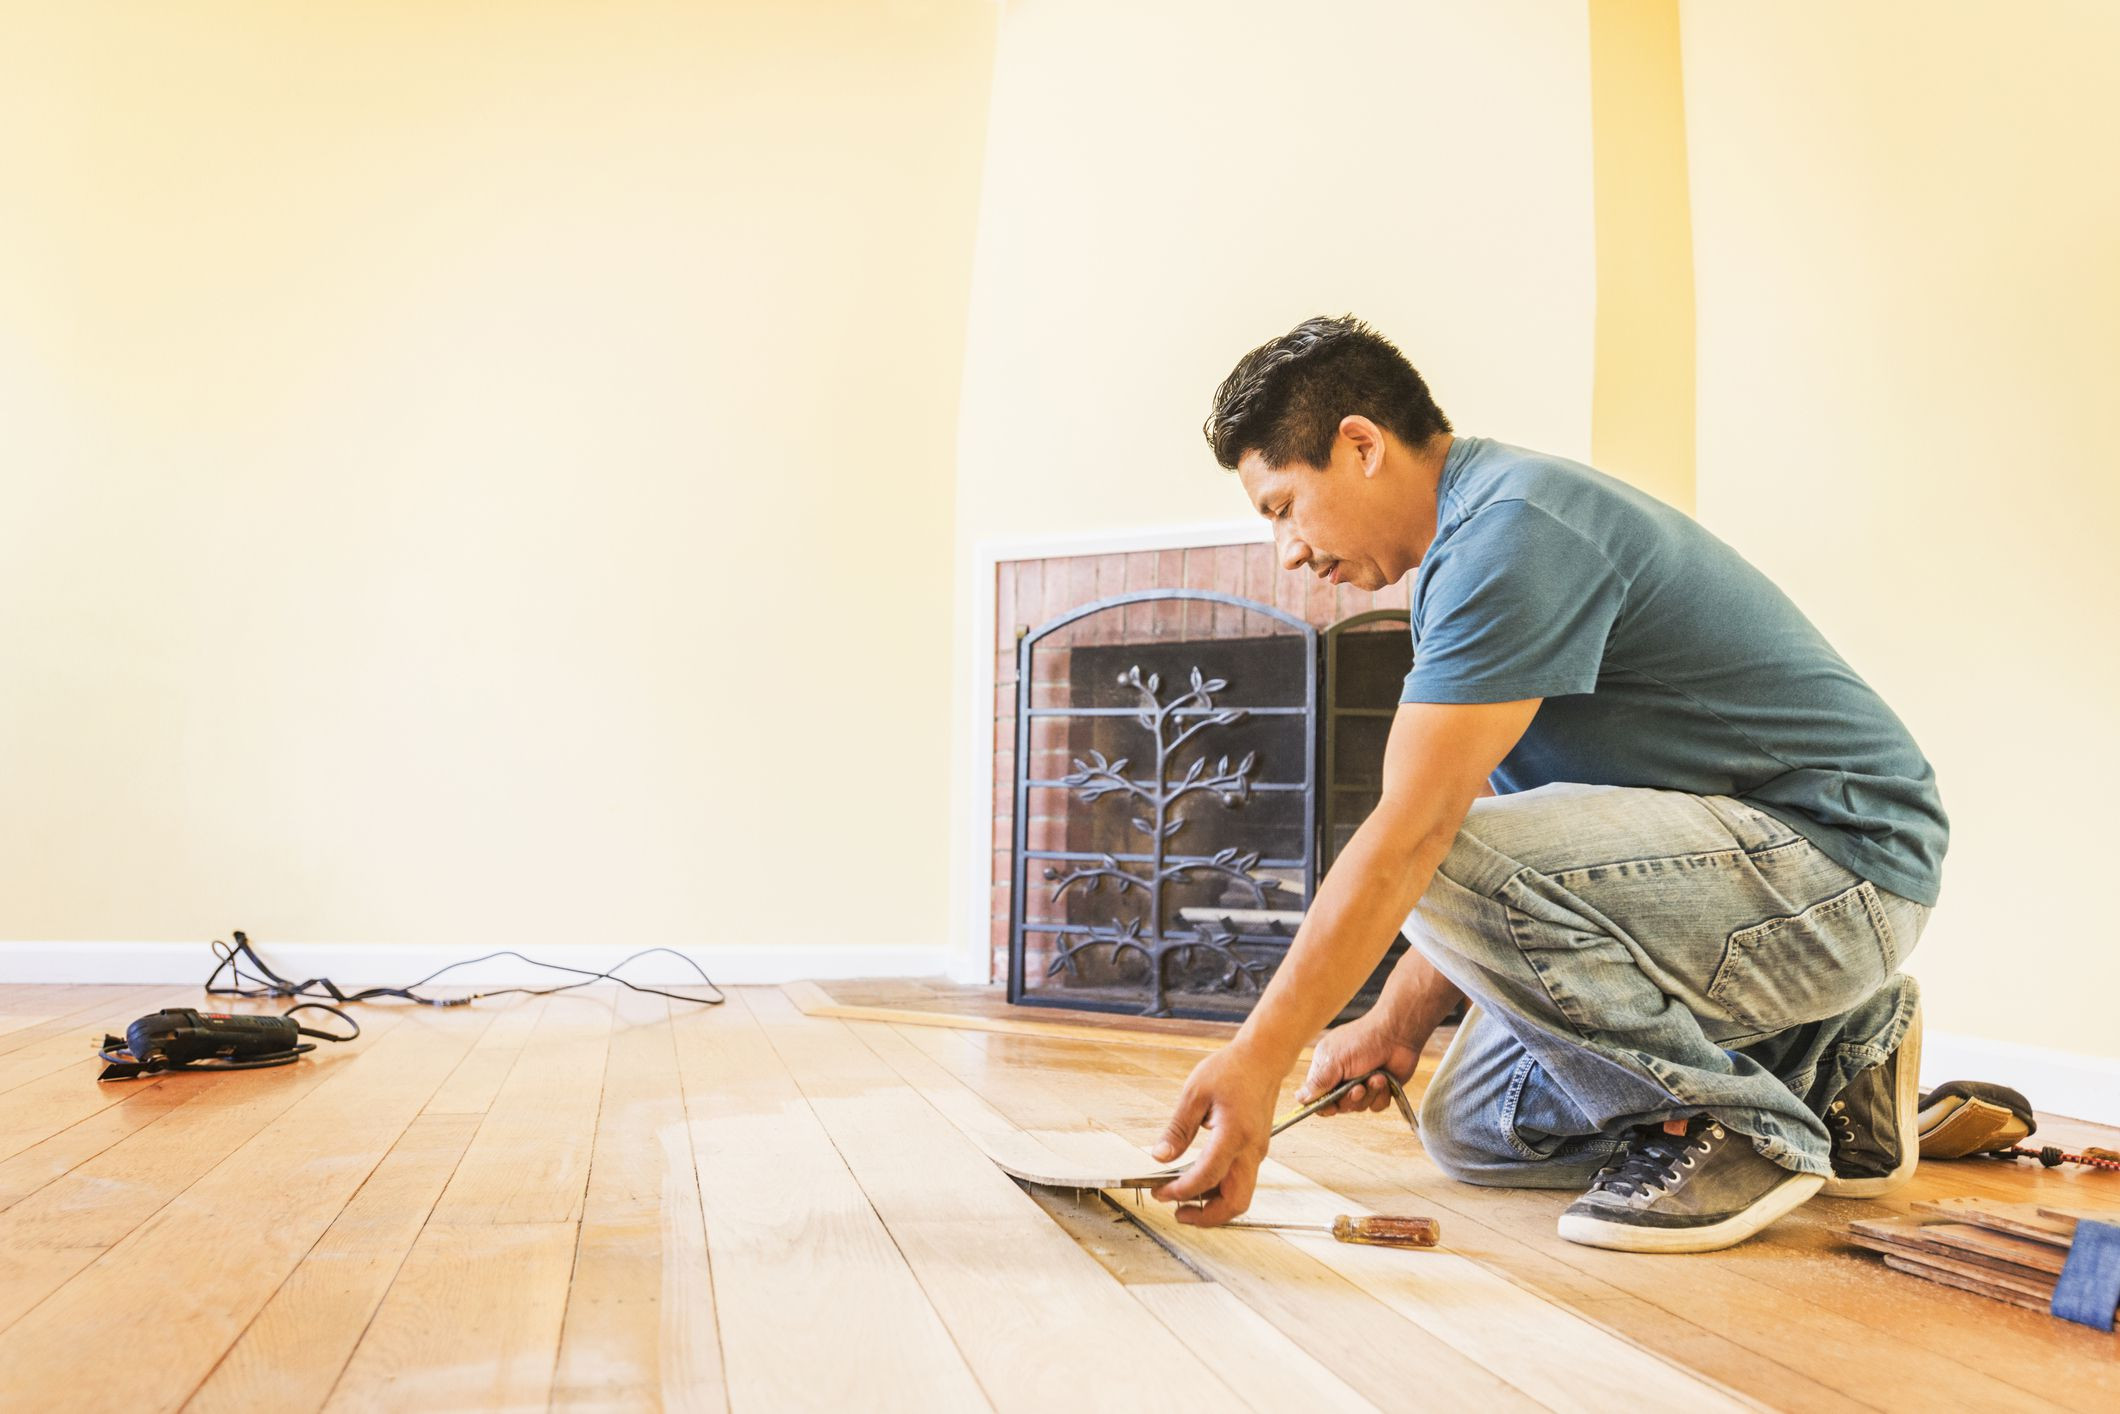 hardwood flooring company reviews of hardwood installer how to hire and what to expect throughout installing wood flooring 592016327 57af51a23df78cd39cfa08d9